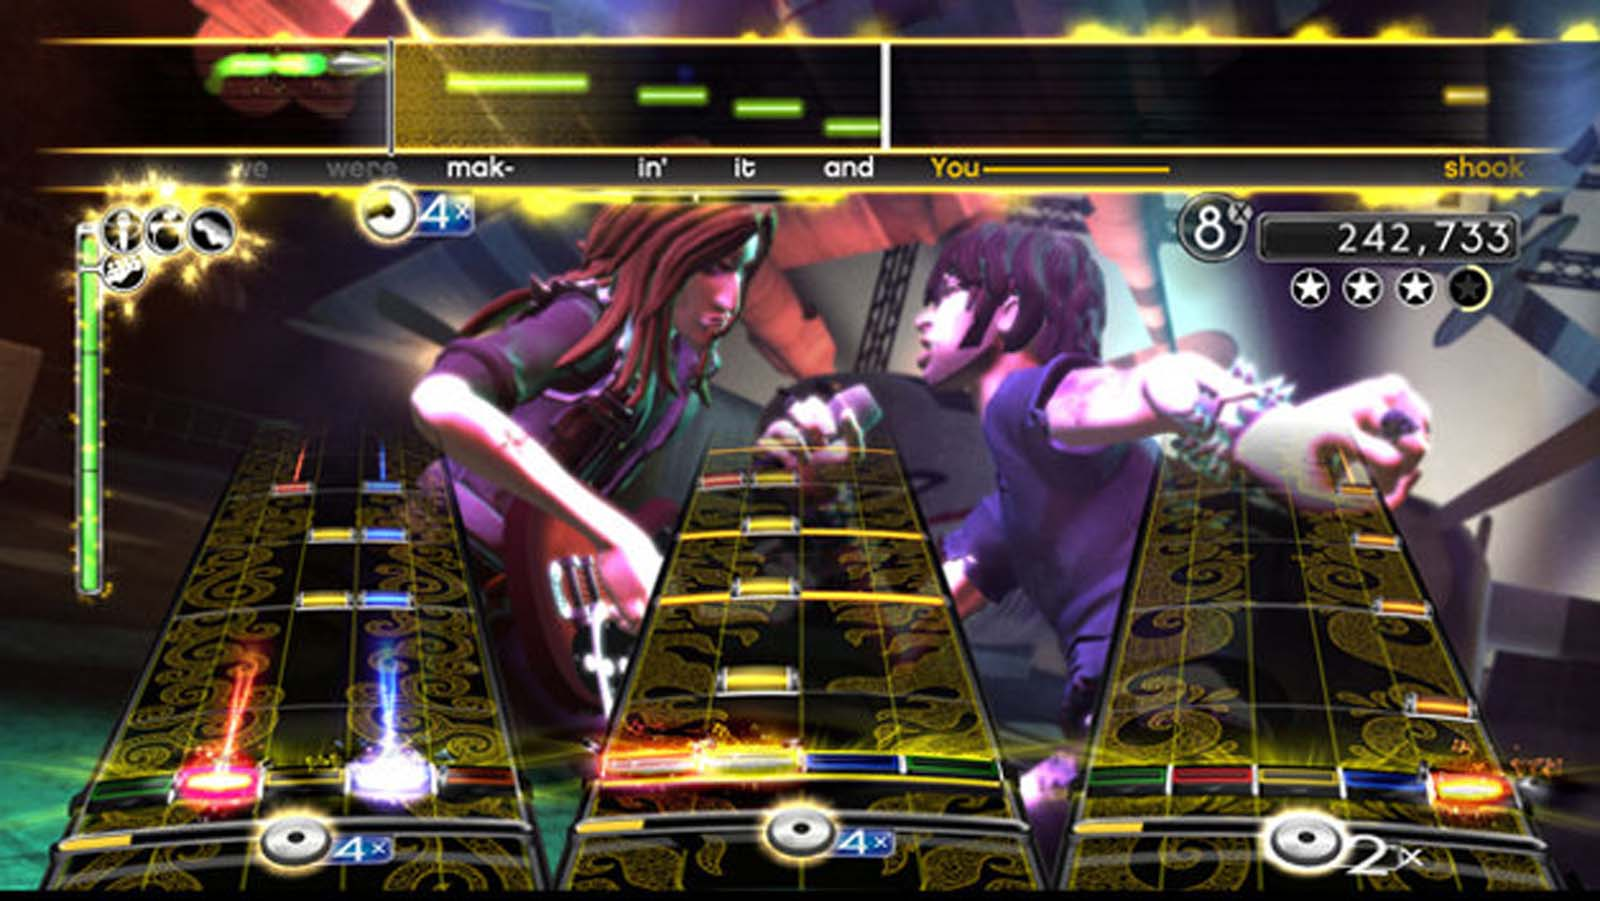 AC-DC Live - Rock Band Track Pack (USA) ISO < PS2 ISOs | Emuparadise